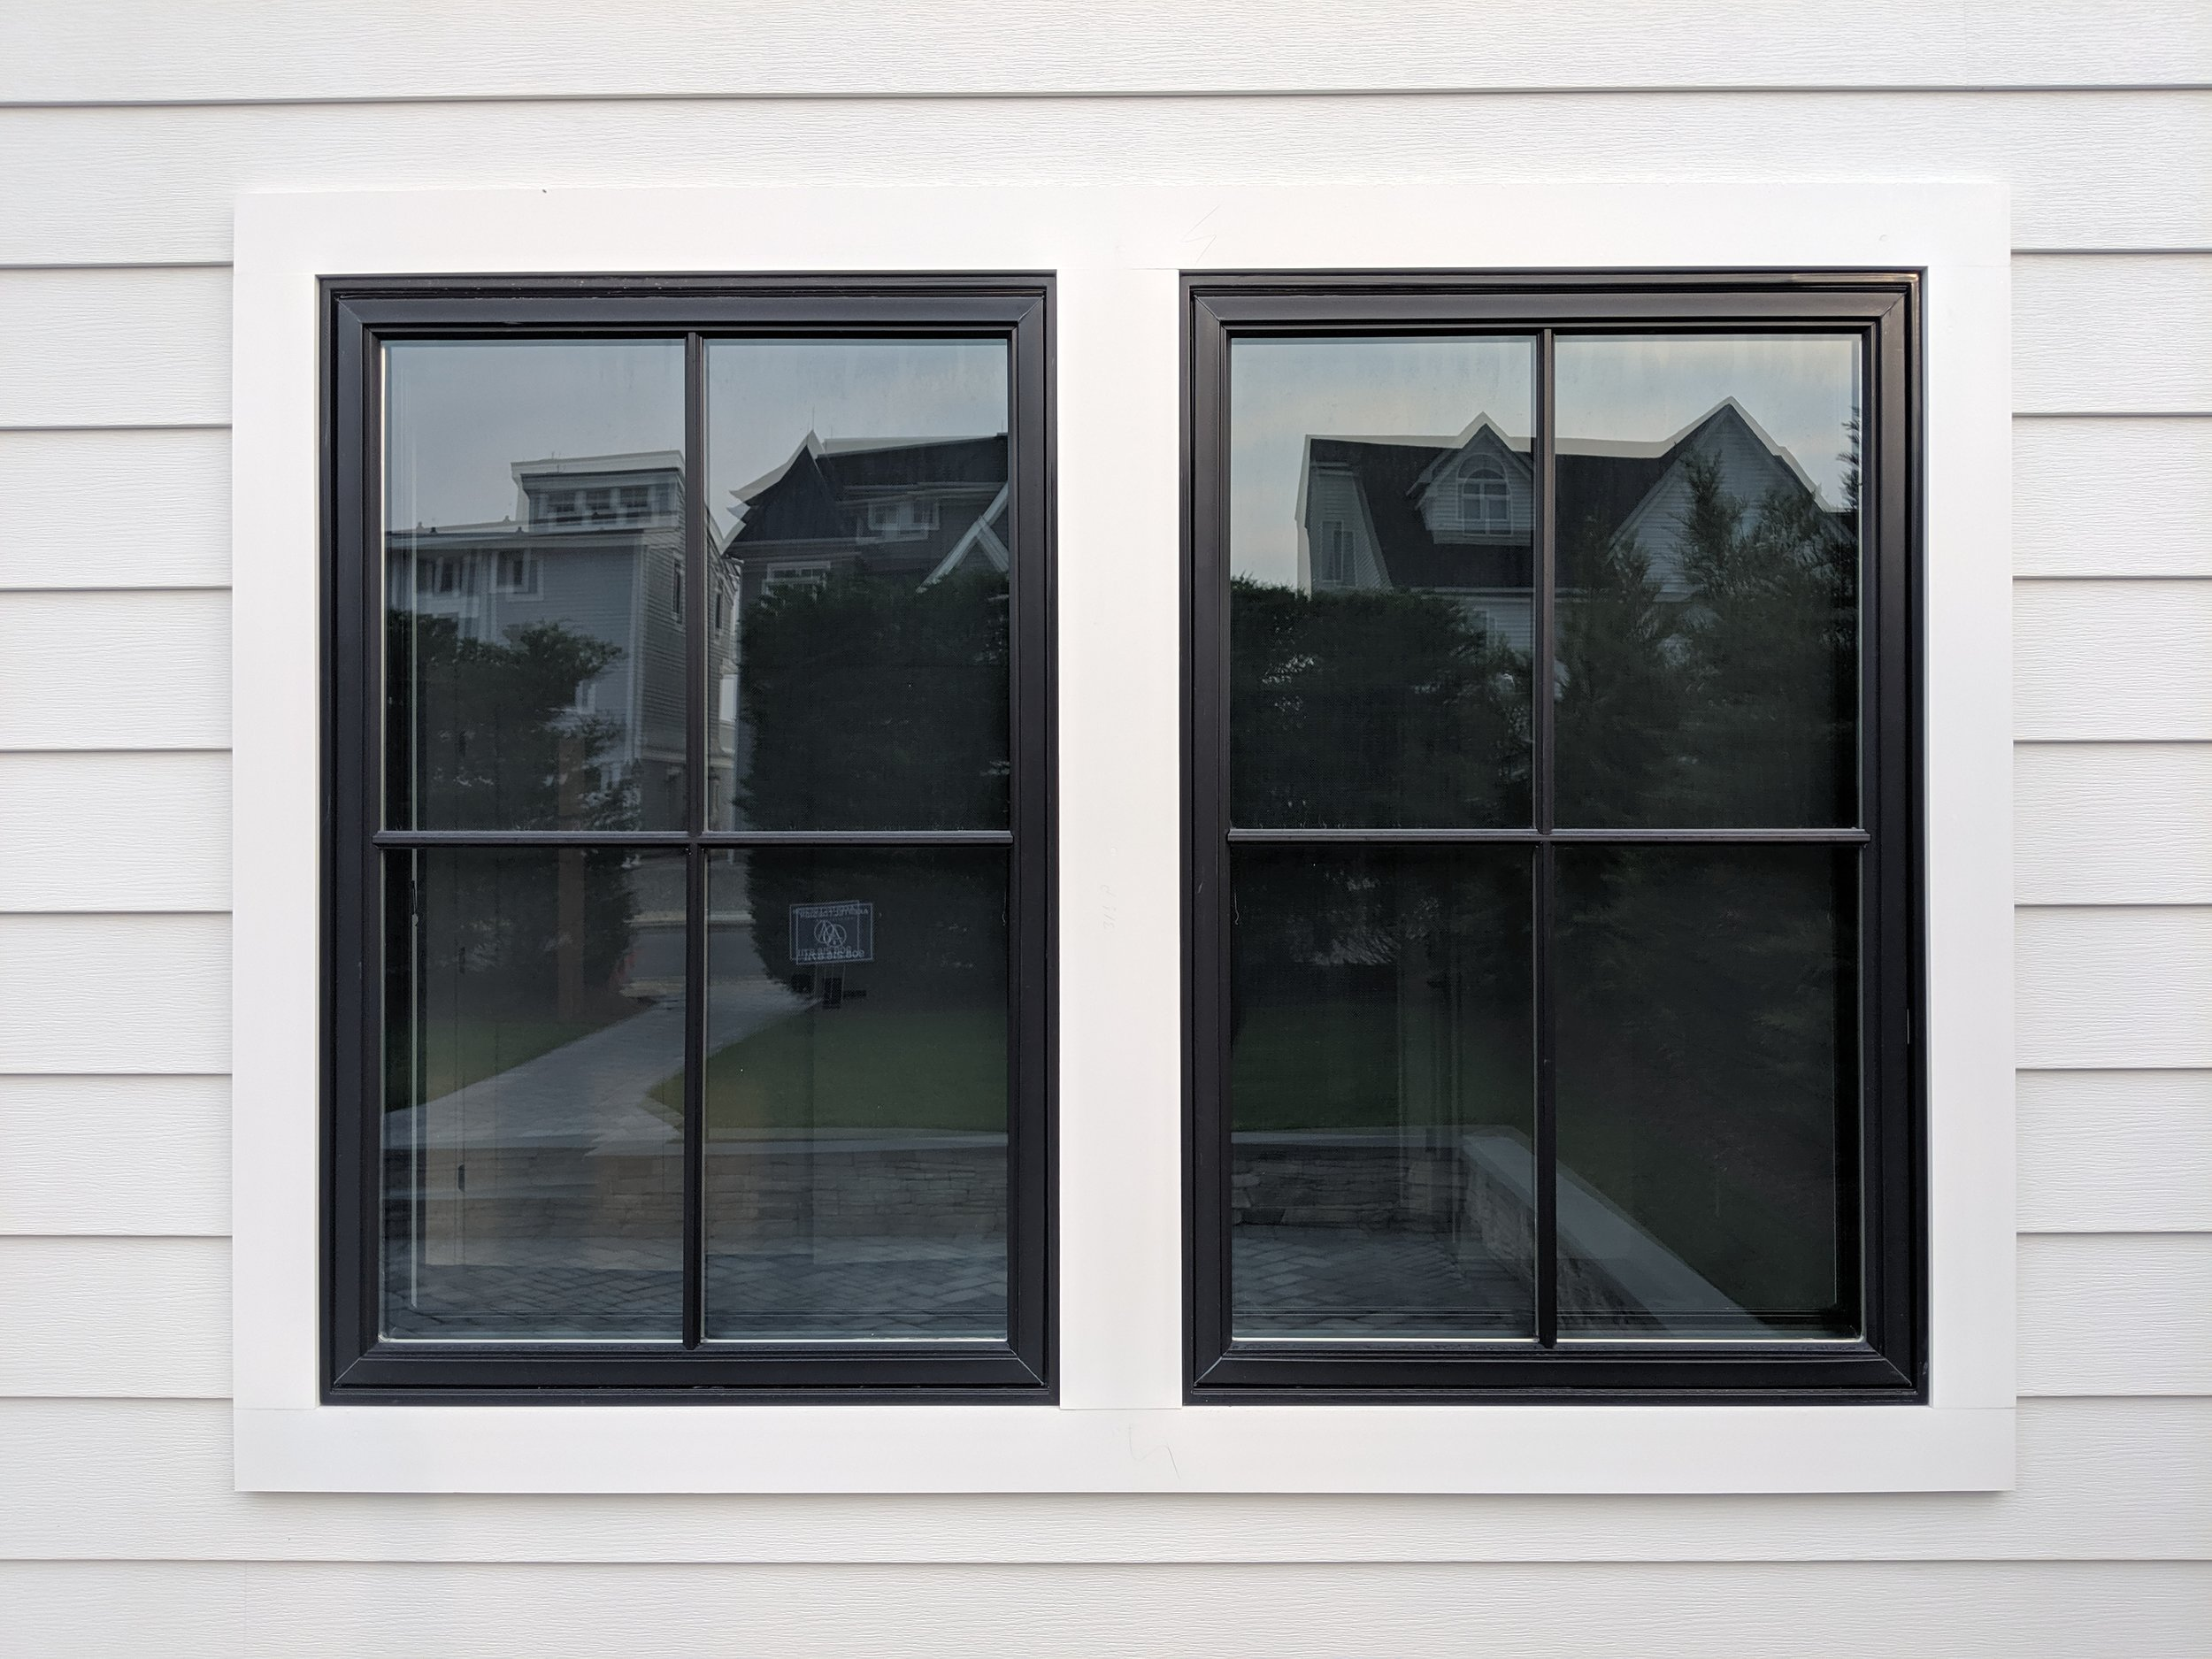 804 1st ave windows.jpg